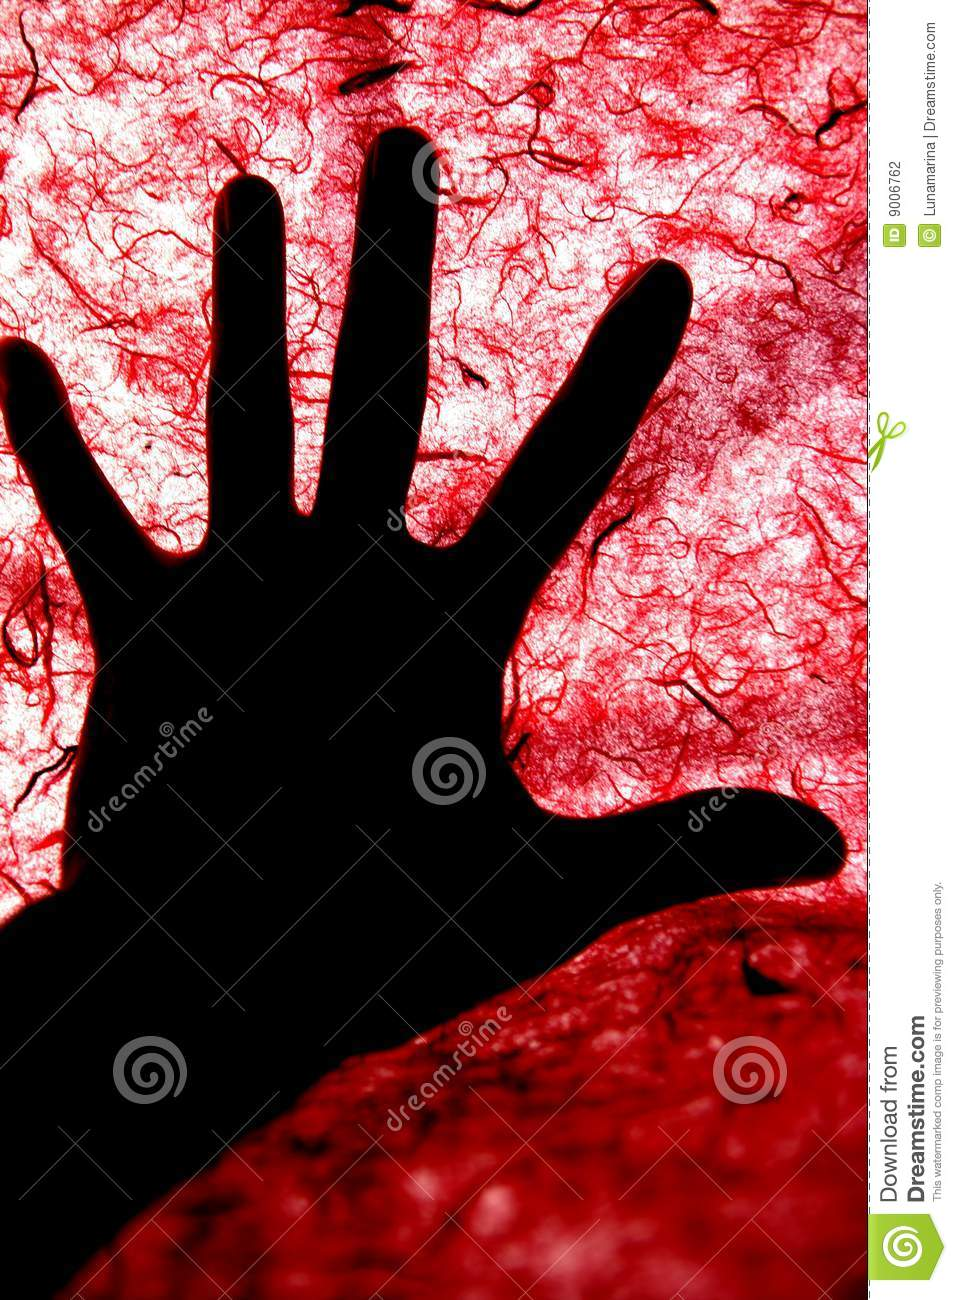 Backlight of human hand over red textured surface